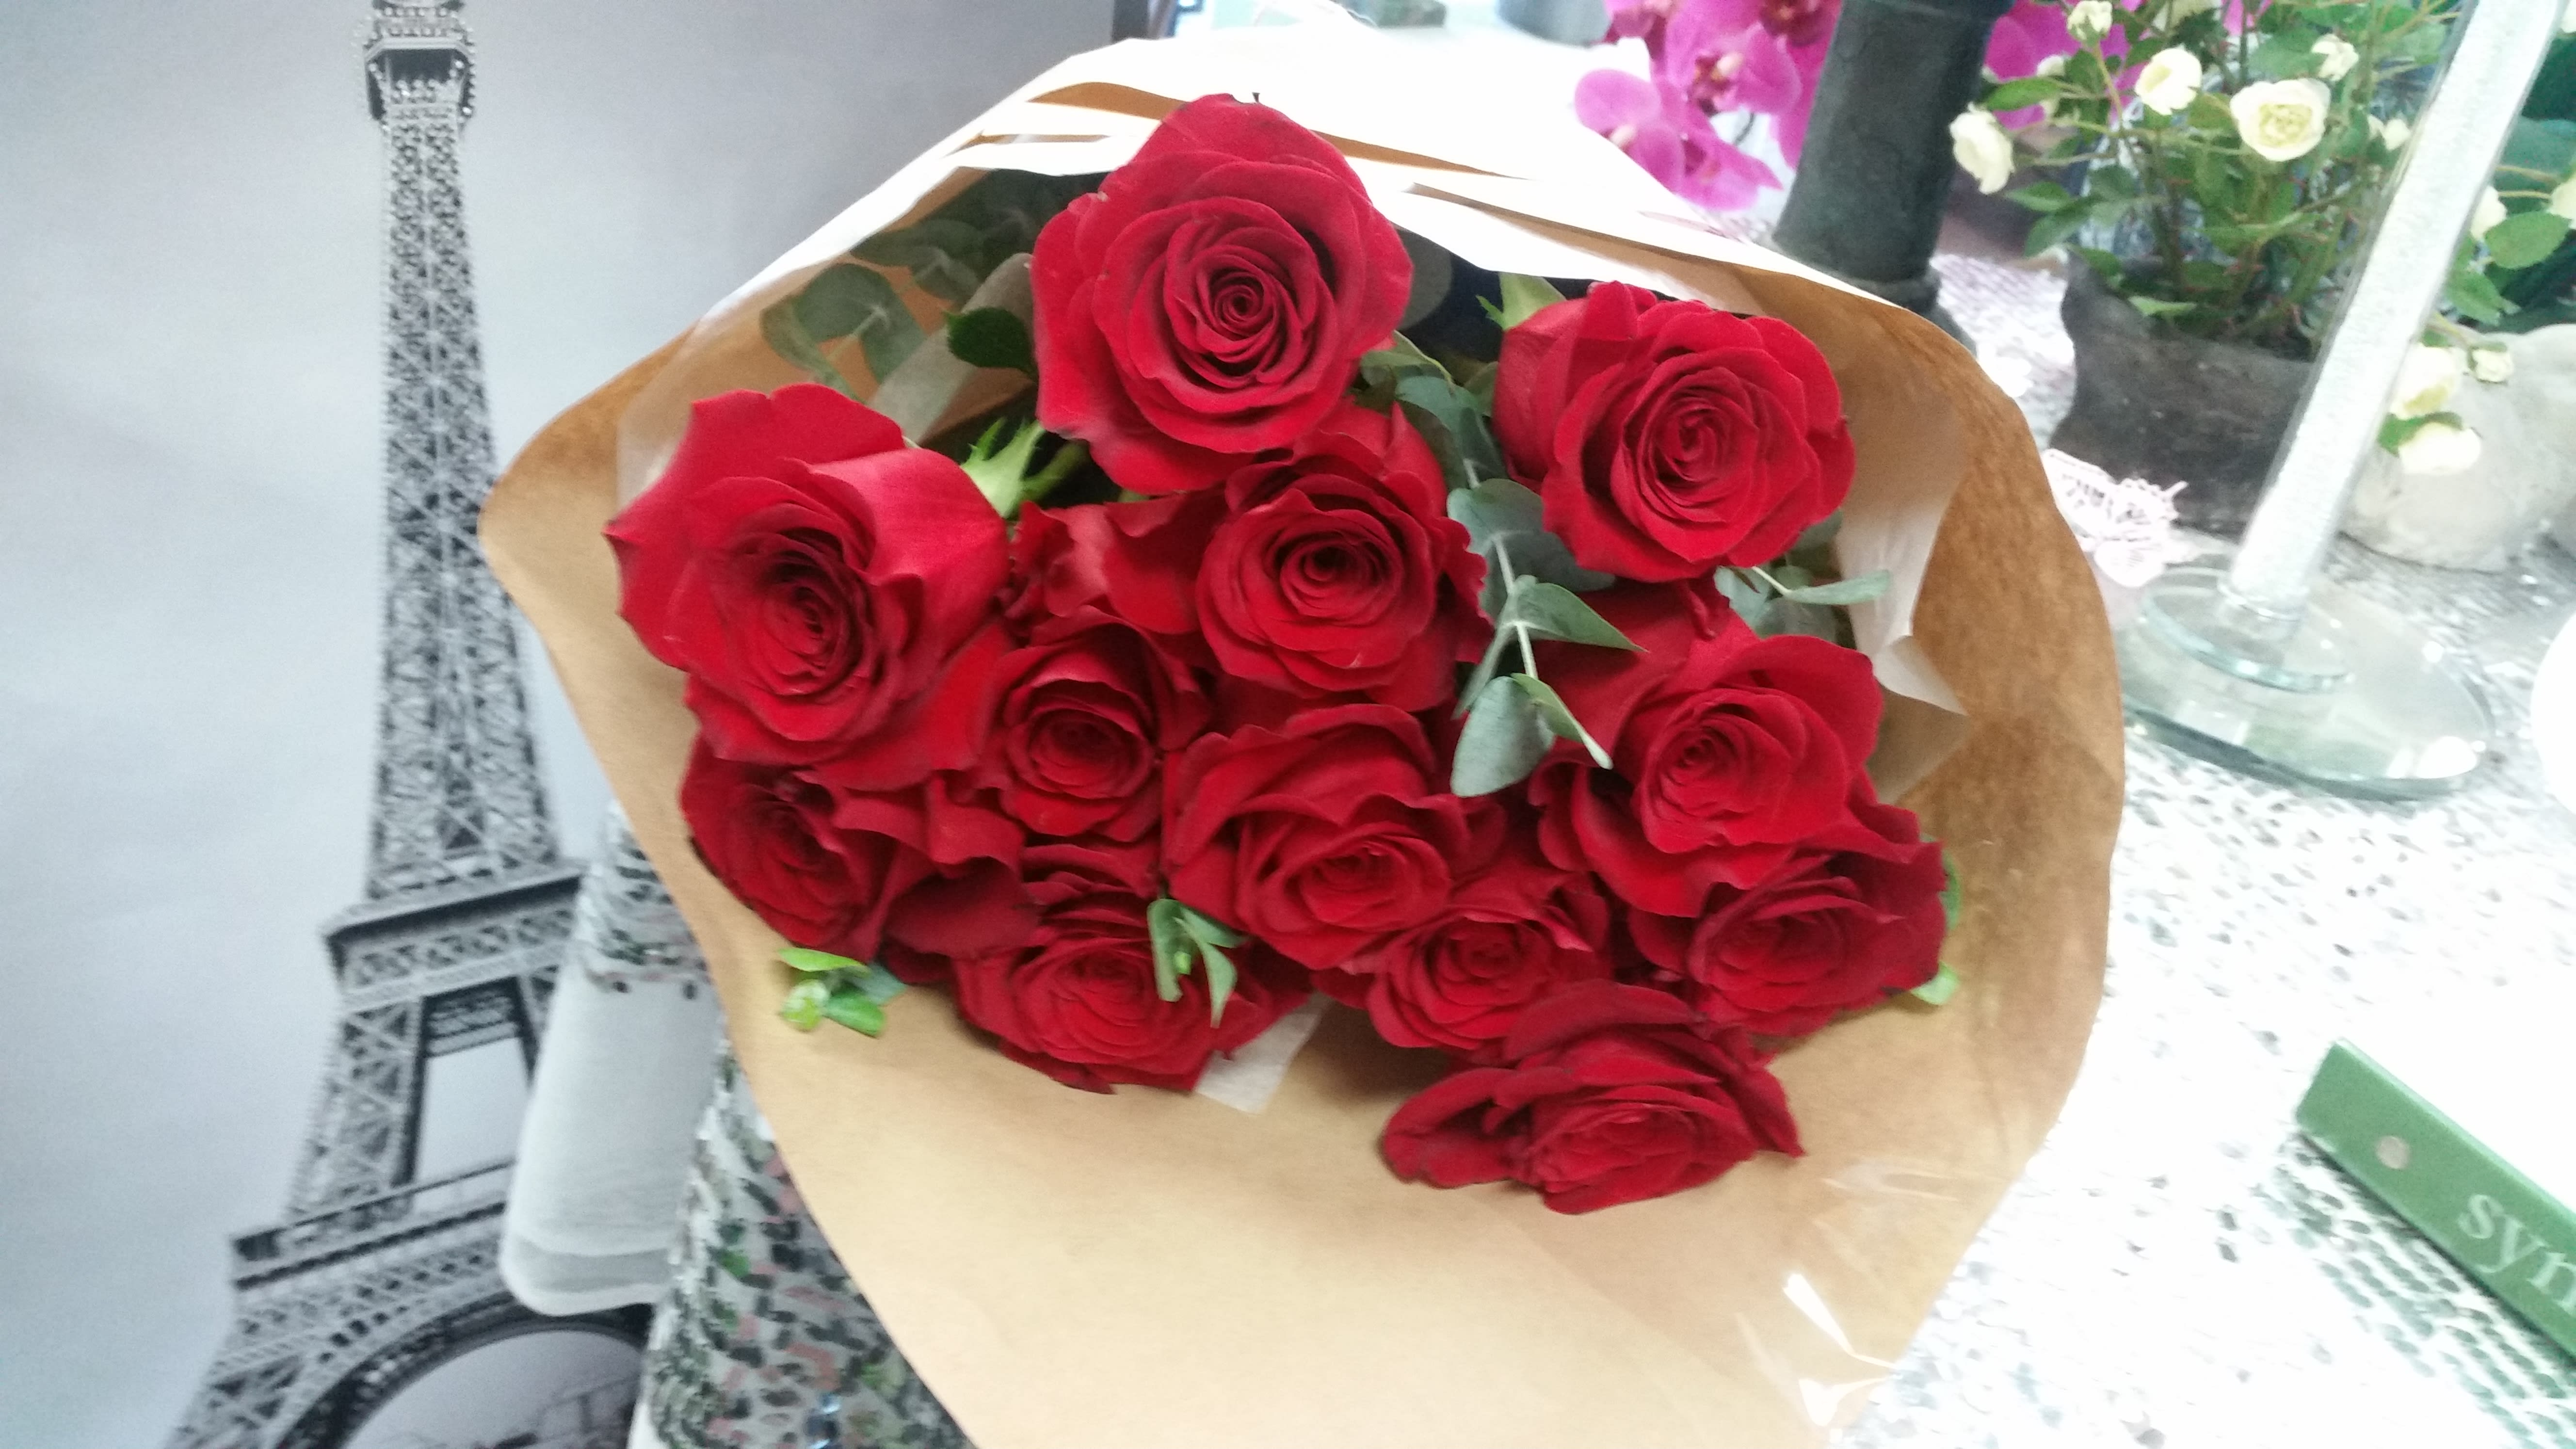 Red Hot Baby Roses Bouquet Wrapped In Brown Paper In Cerritos Ca